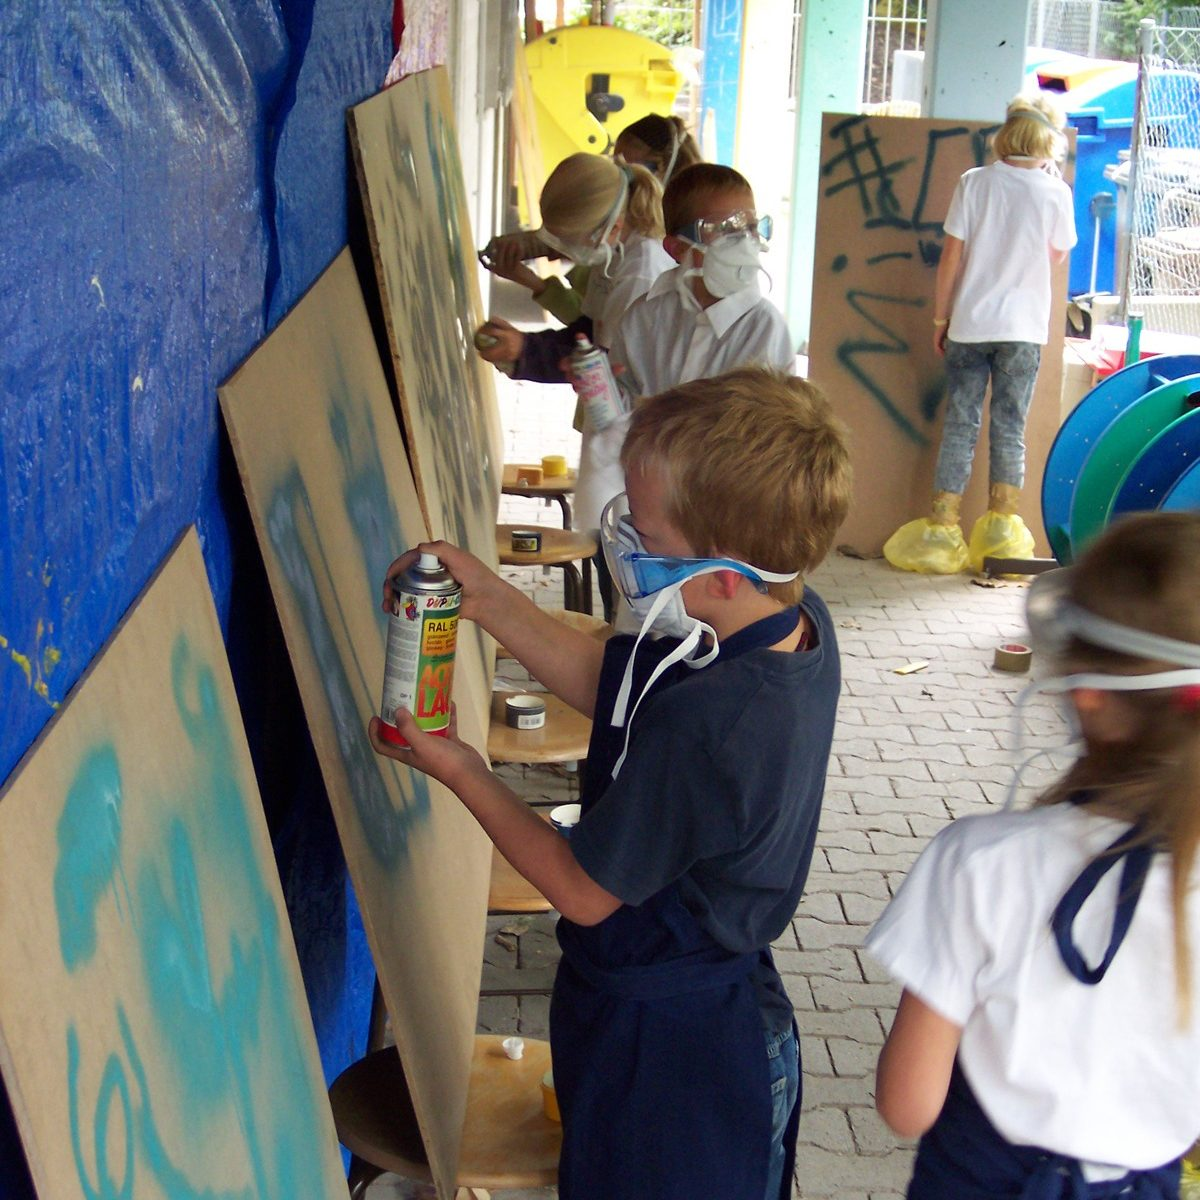 graffitiauftrag_graffitikuenstler_graffitikids_artmos4_kek_event_graffiti_2